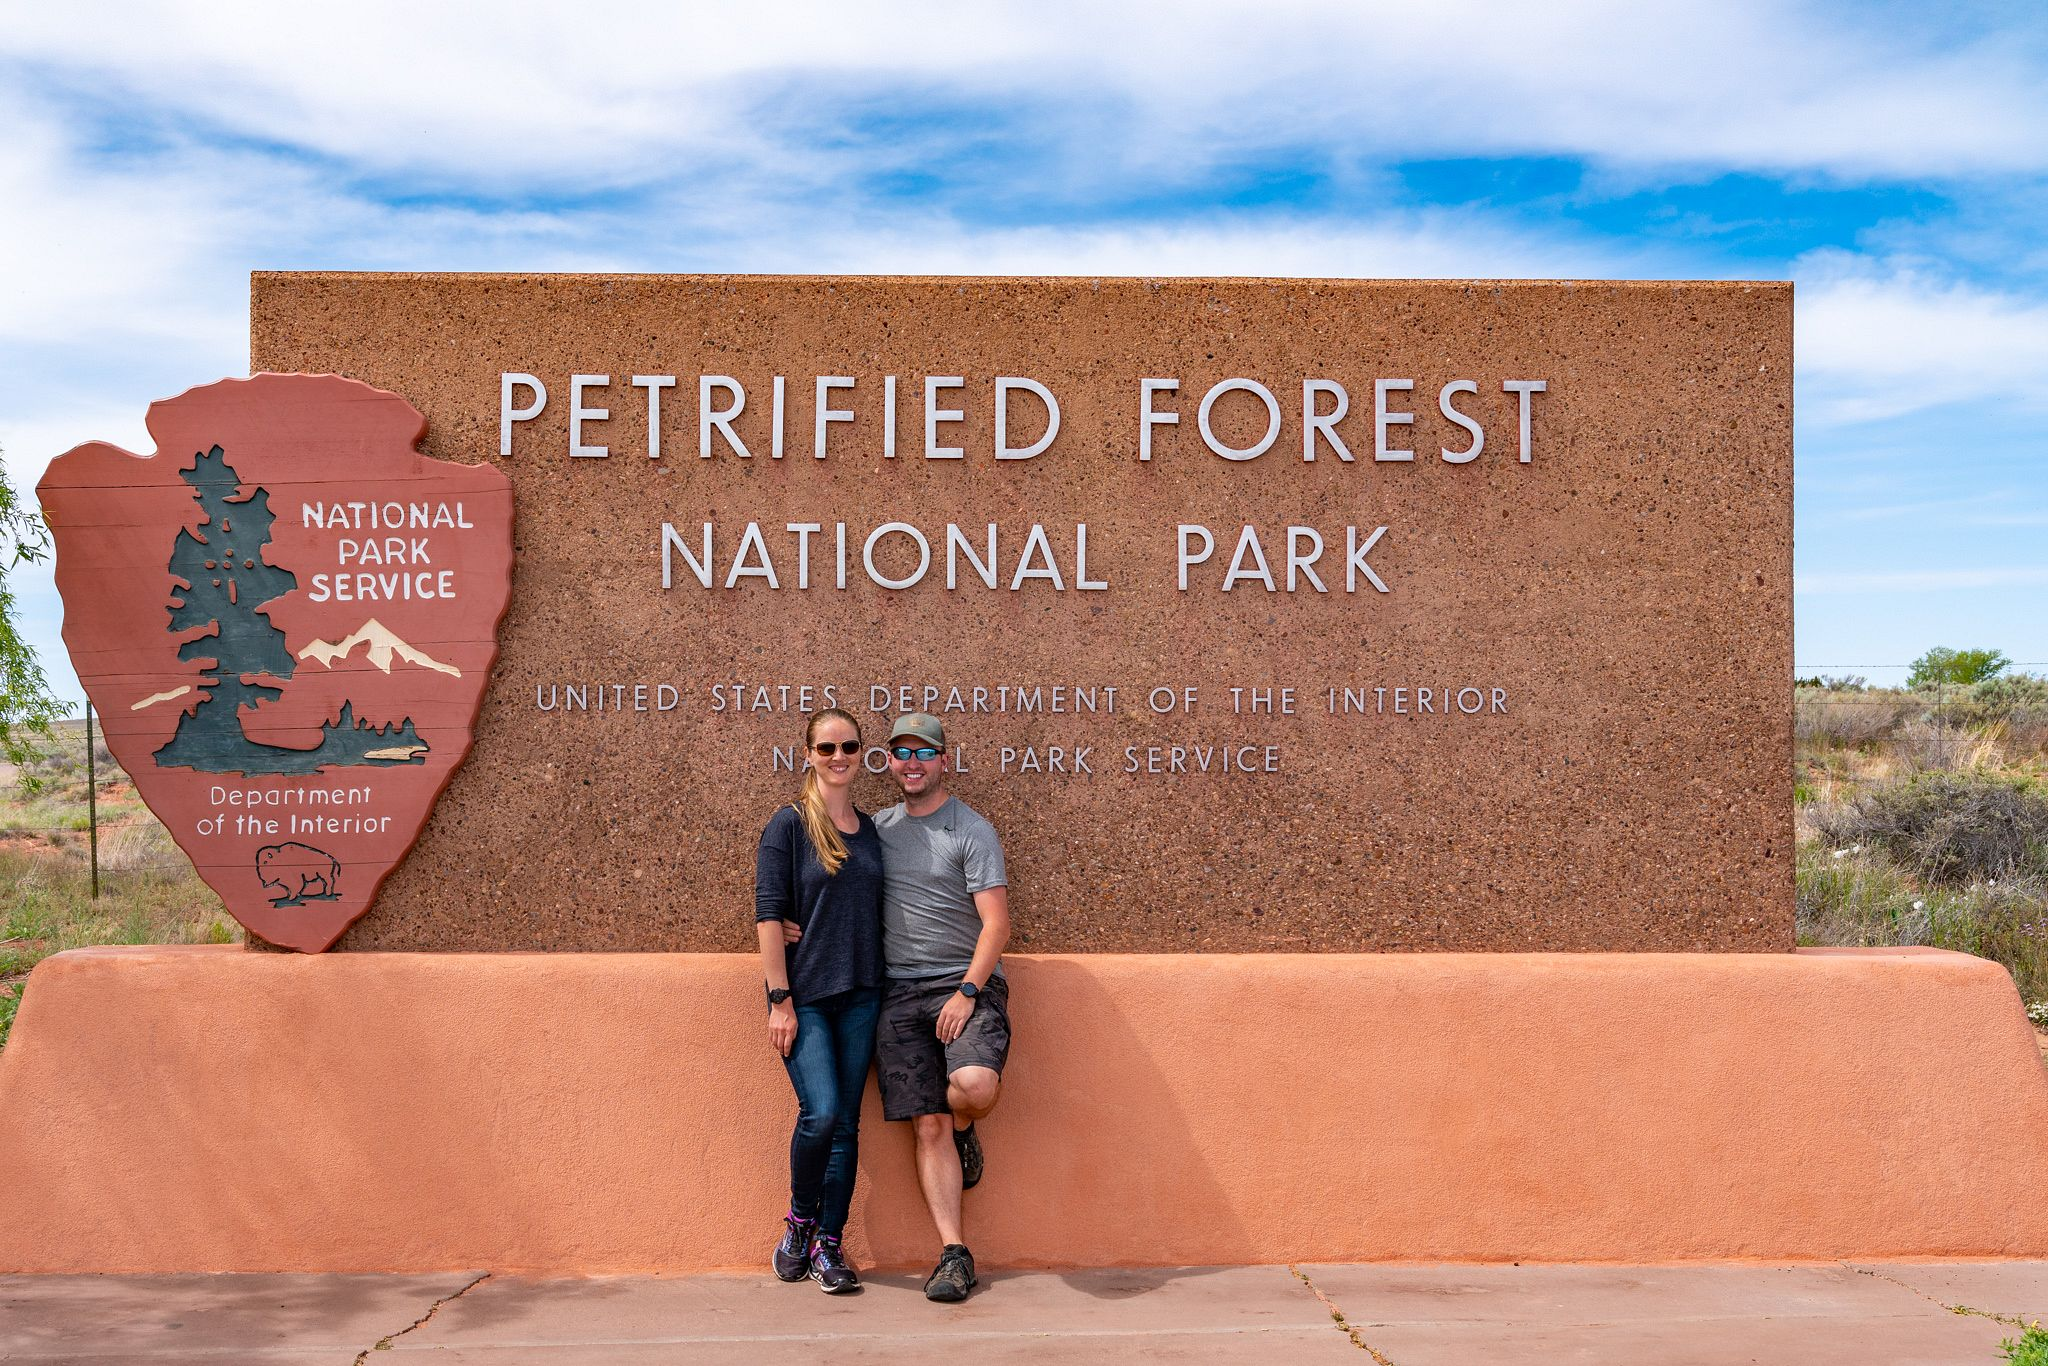 Petrified Forest National Park Entrance Sign